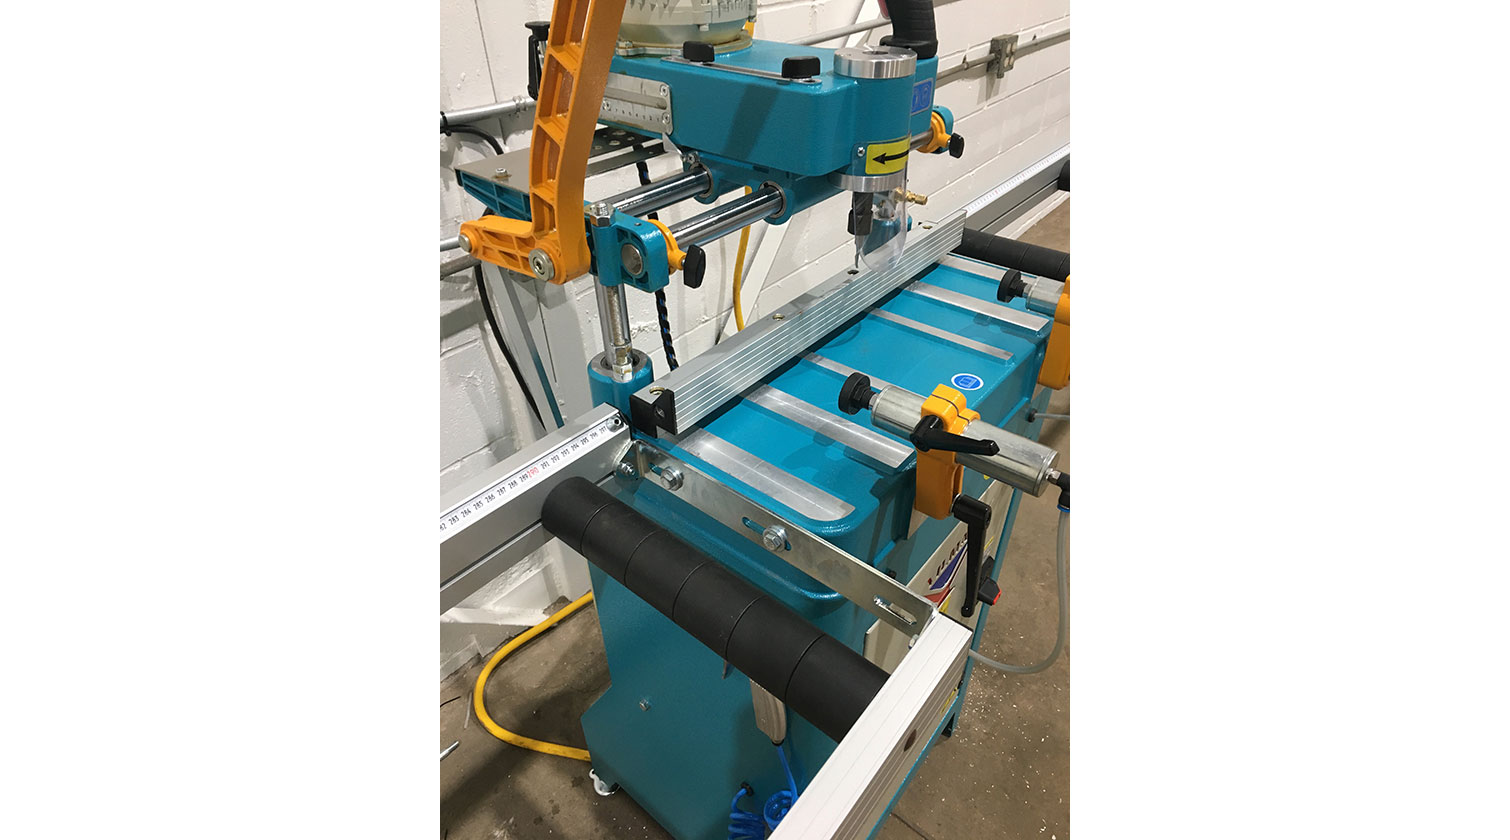 INT aluminum copy router Yilmaz FR 221 S working area